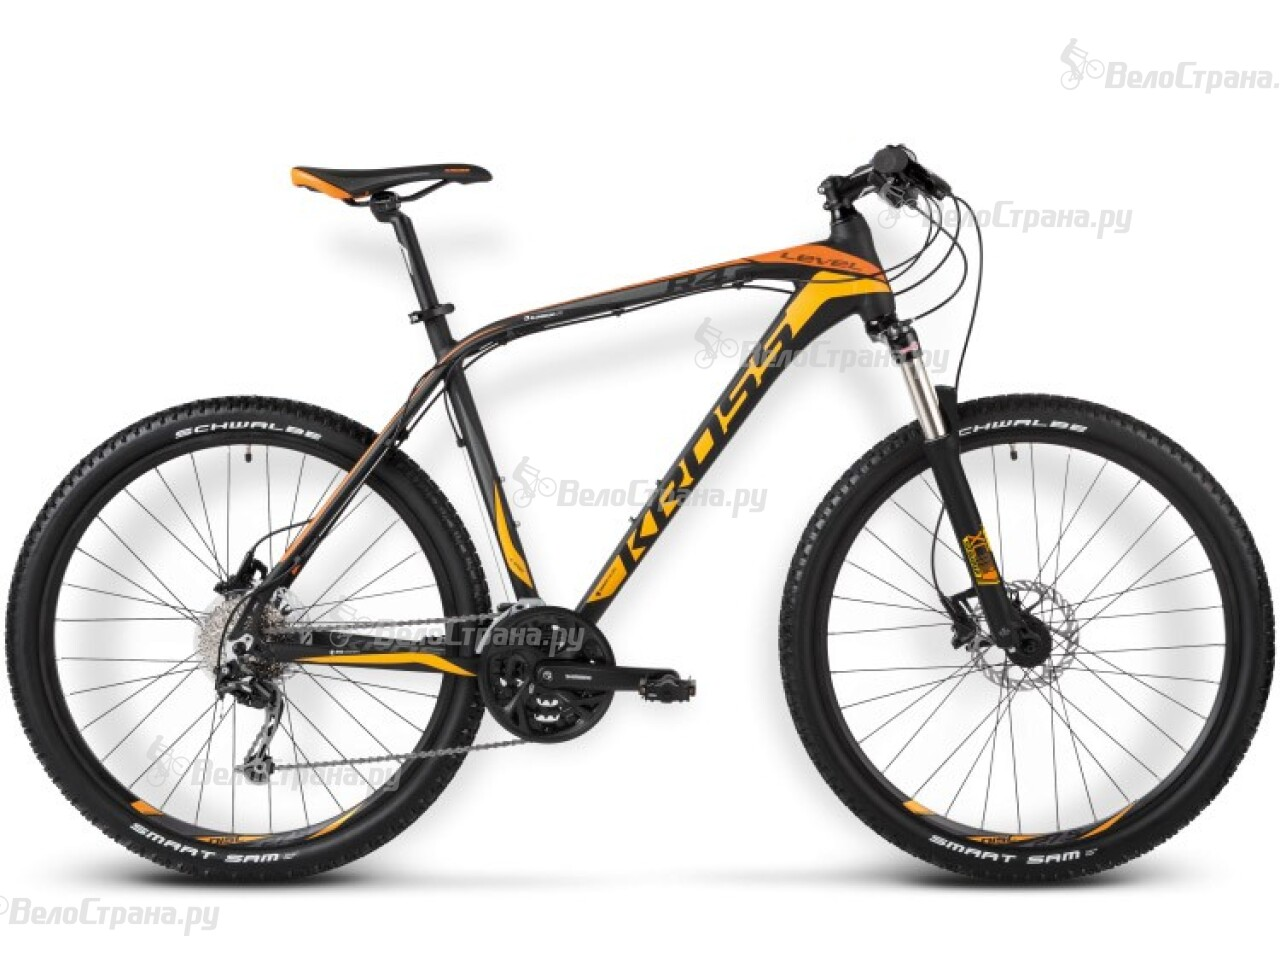 Велосипед Kross Level R4 (2015) велосипед kross hexagon r4 2015